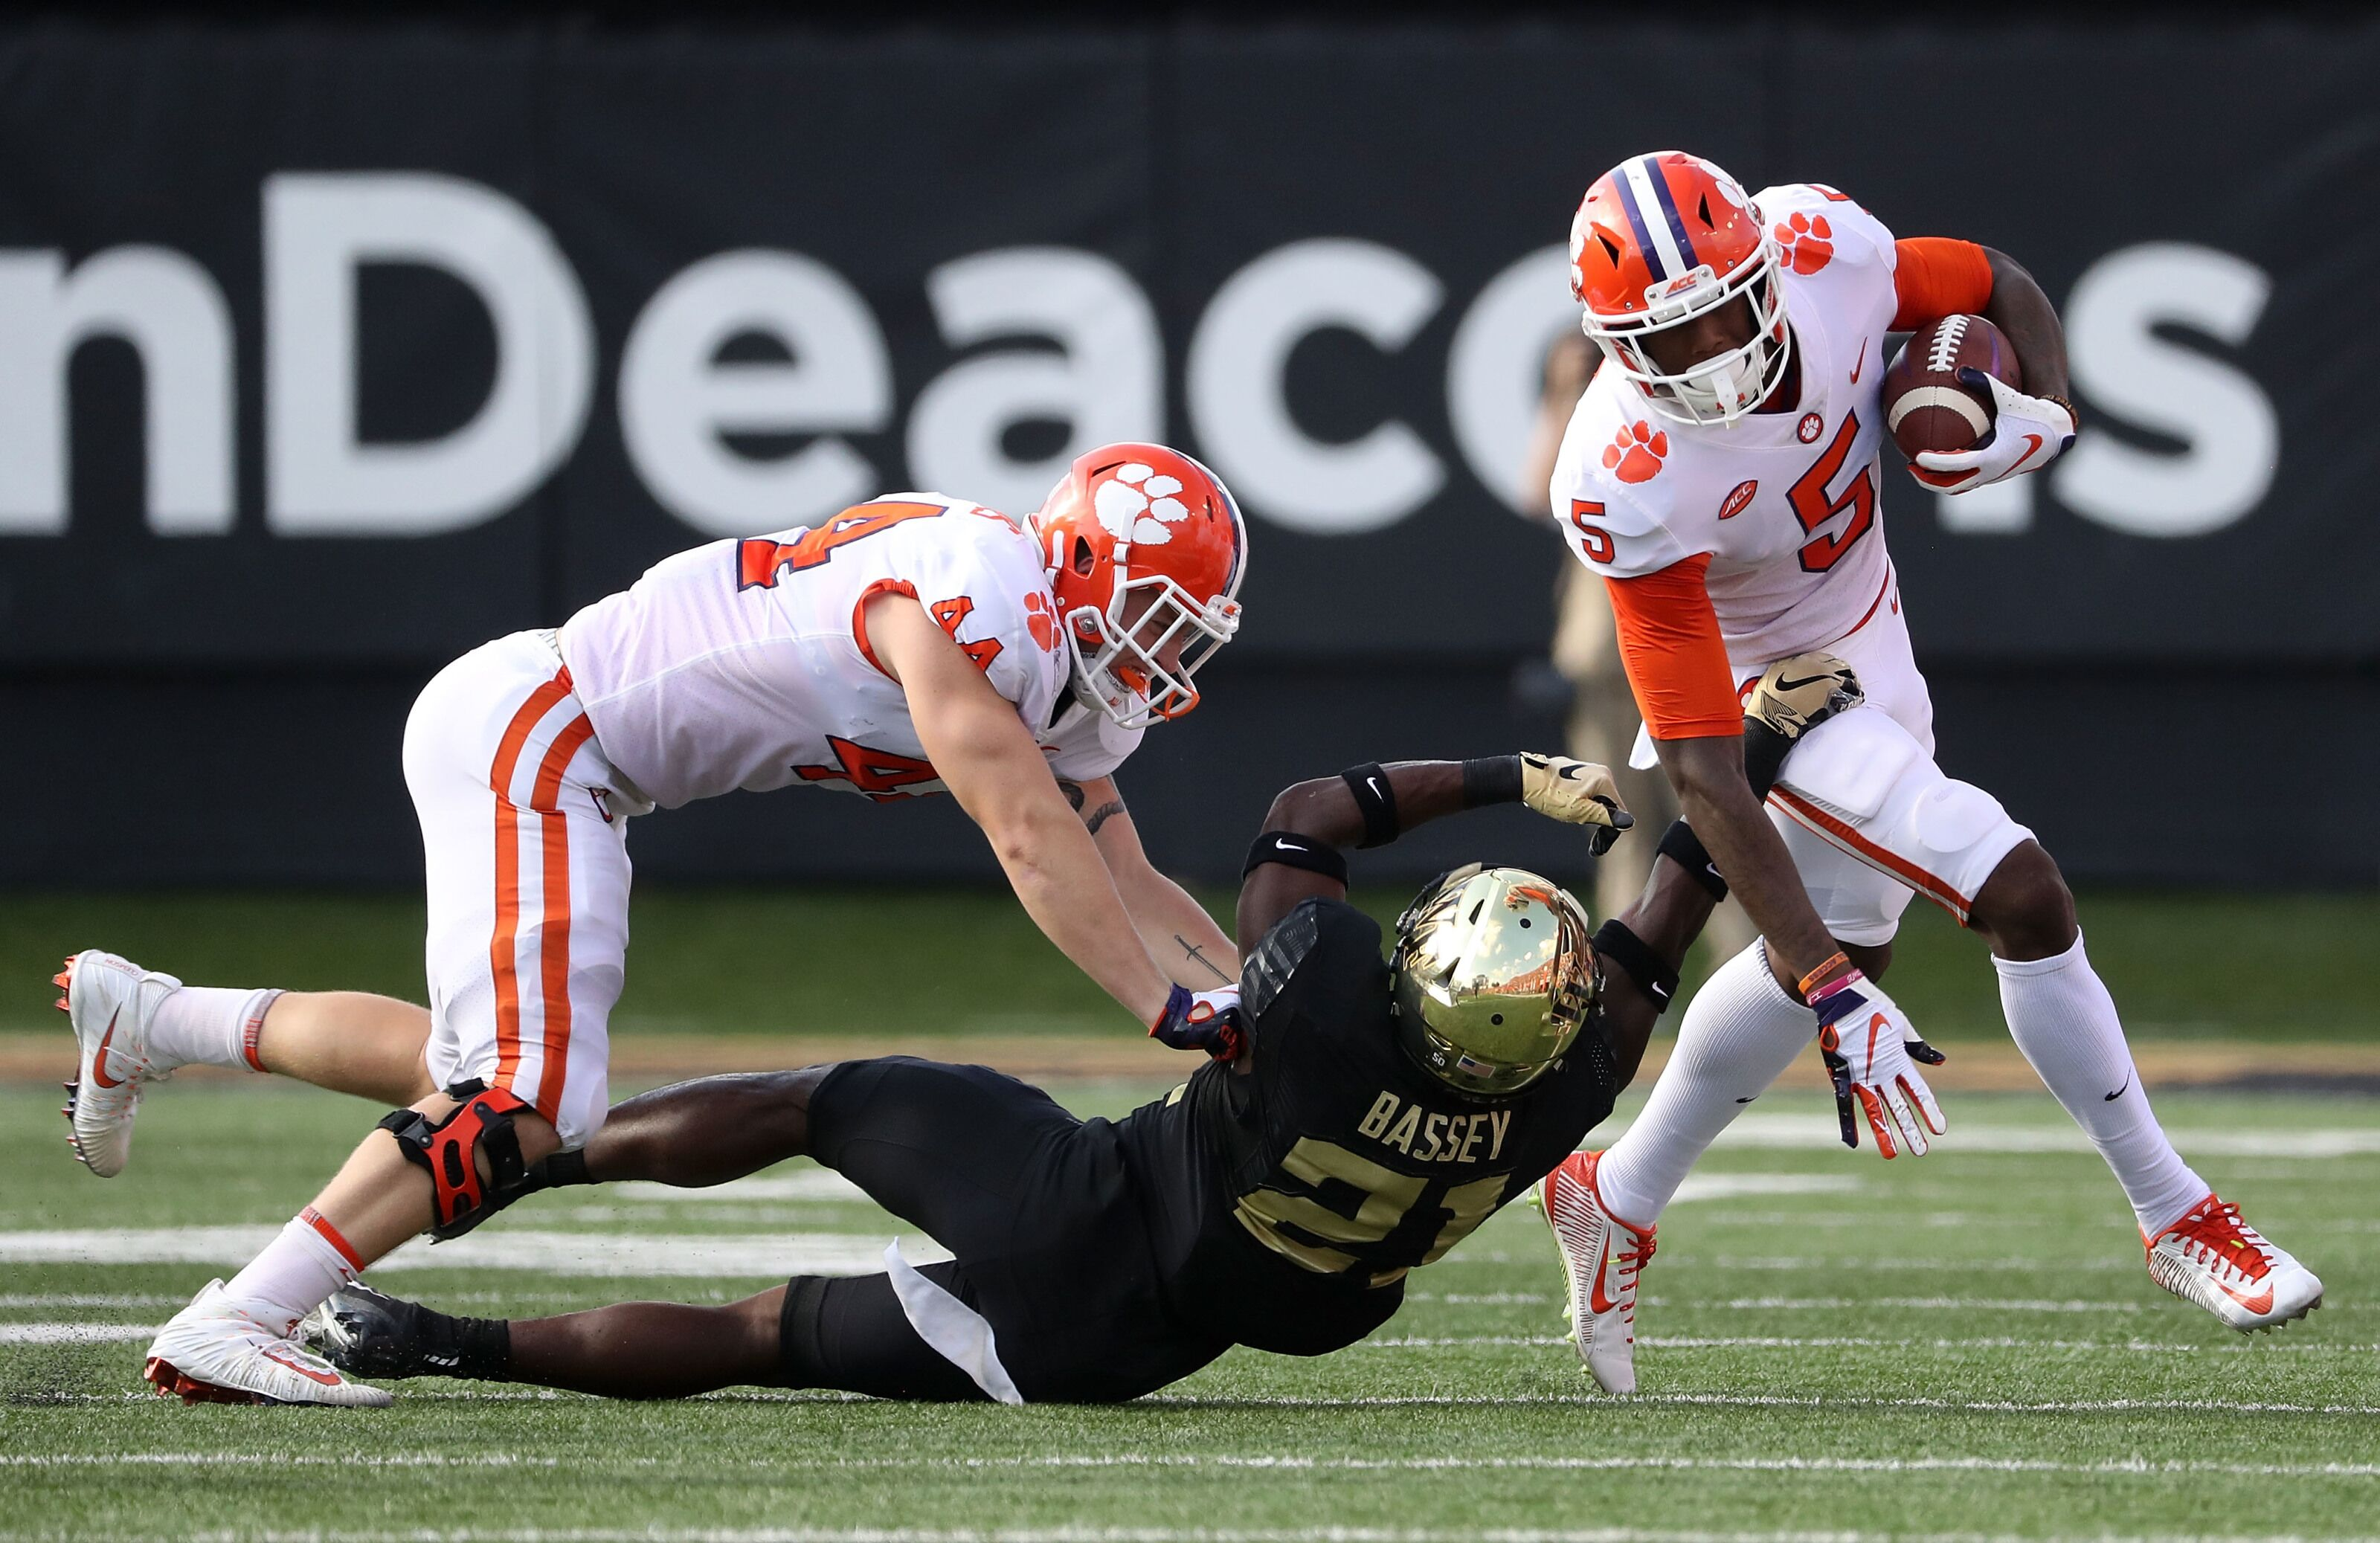 Clemson vs. NC State: Game Announcers, TV Info, Radio, Odds, More